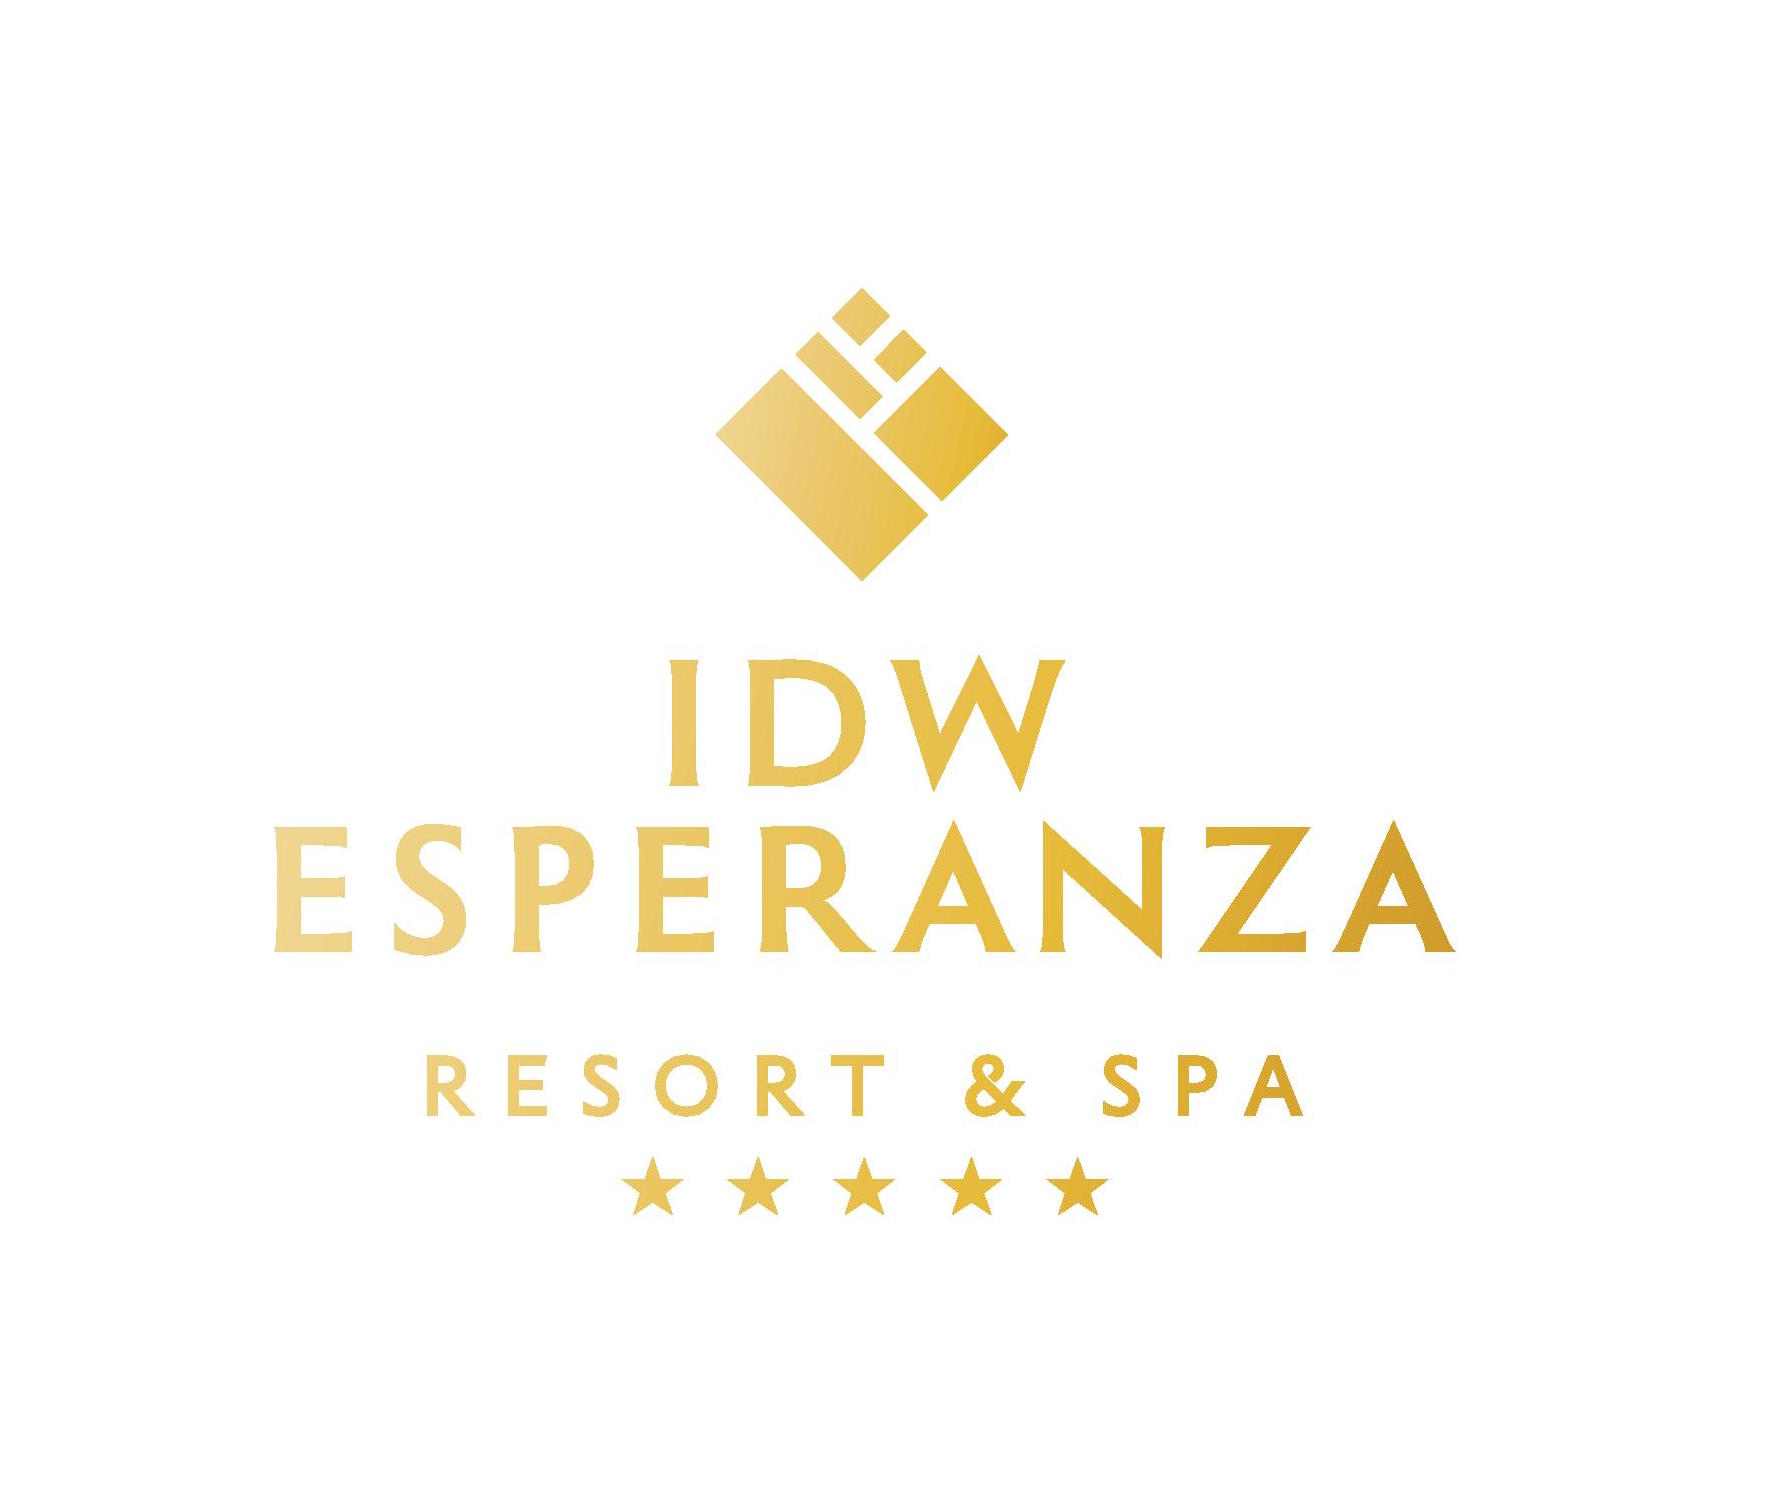 IDW Esperanza Resort